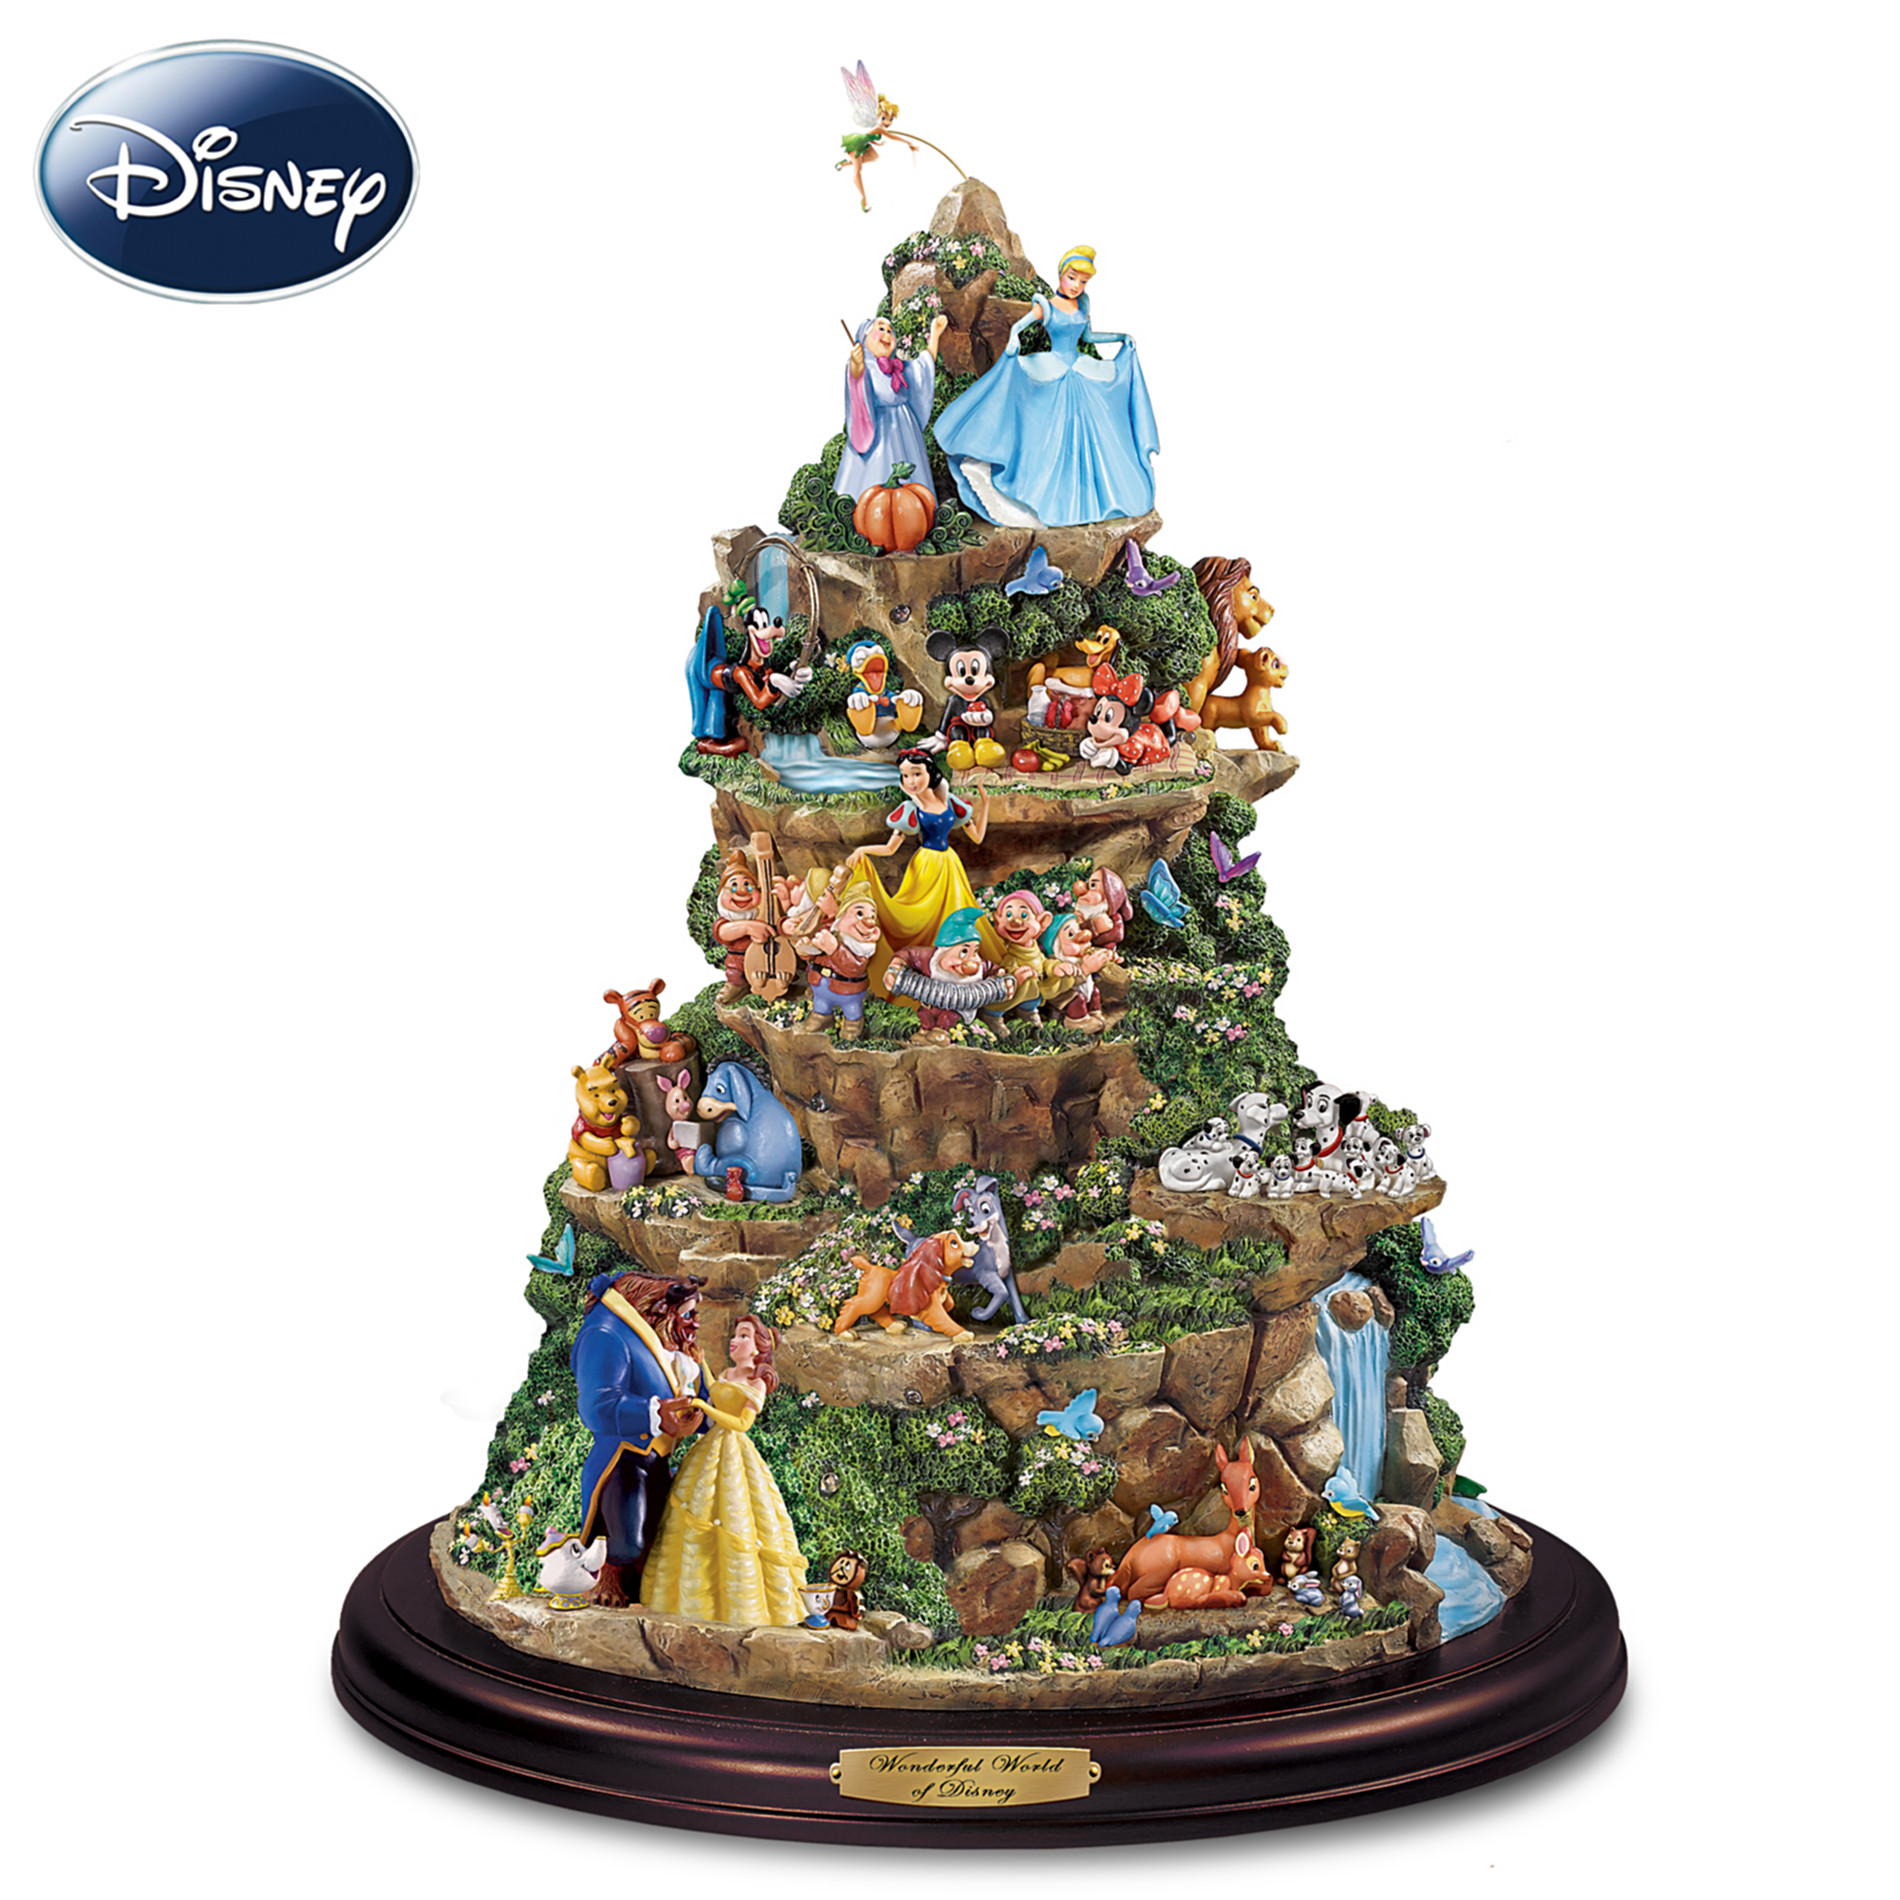 The Bradford Editions The Wonderful World Of Disney Sculpture: Tabletop Disney Decoration at Sears.com